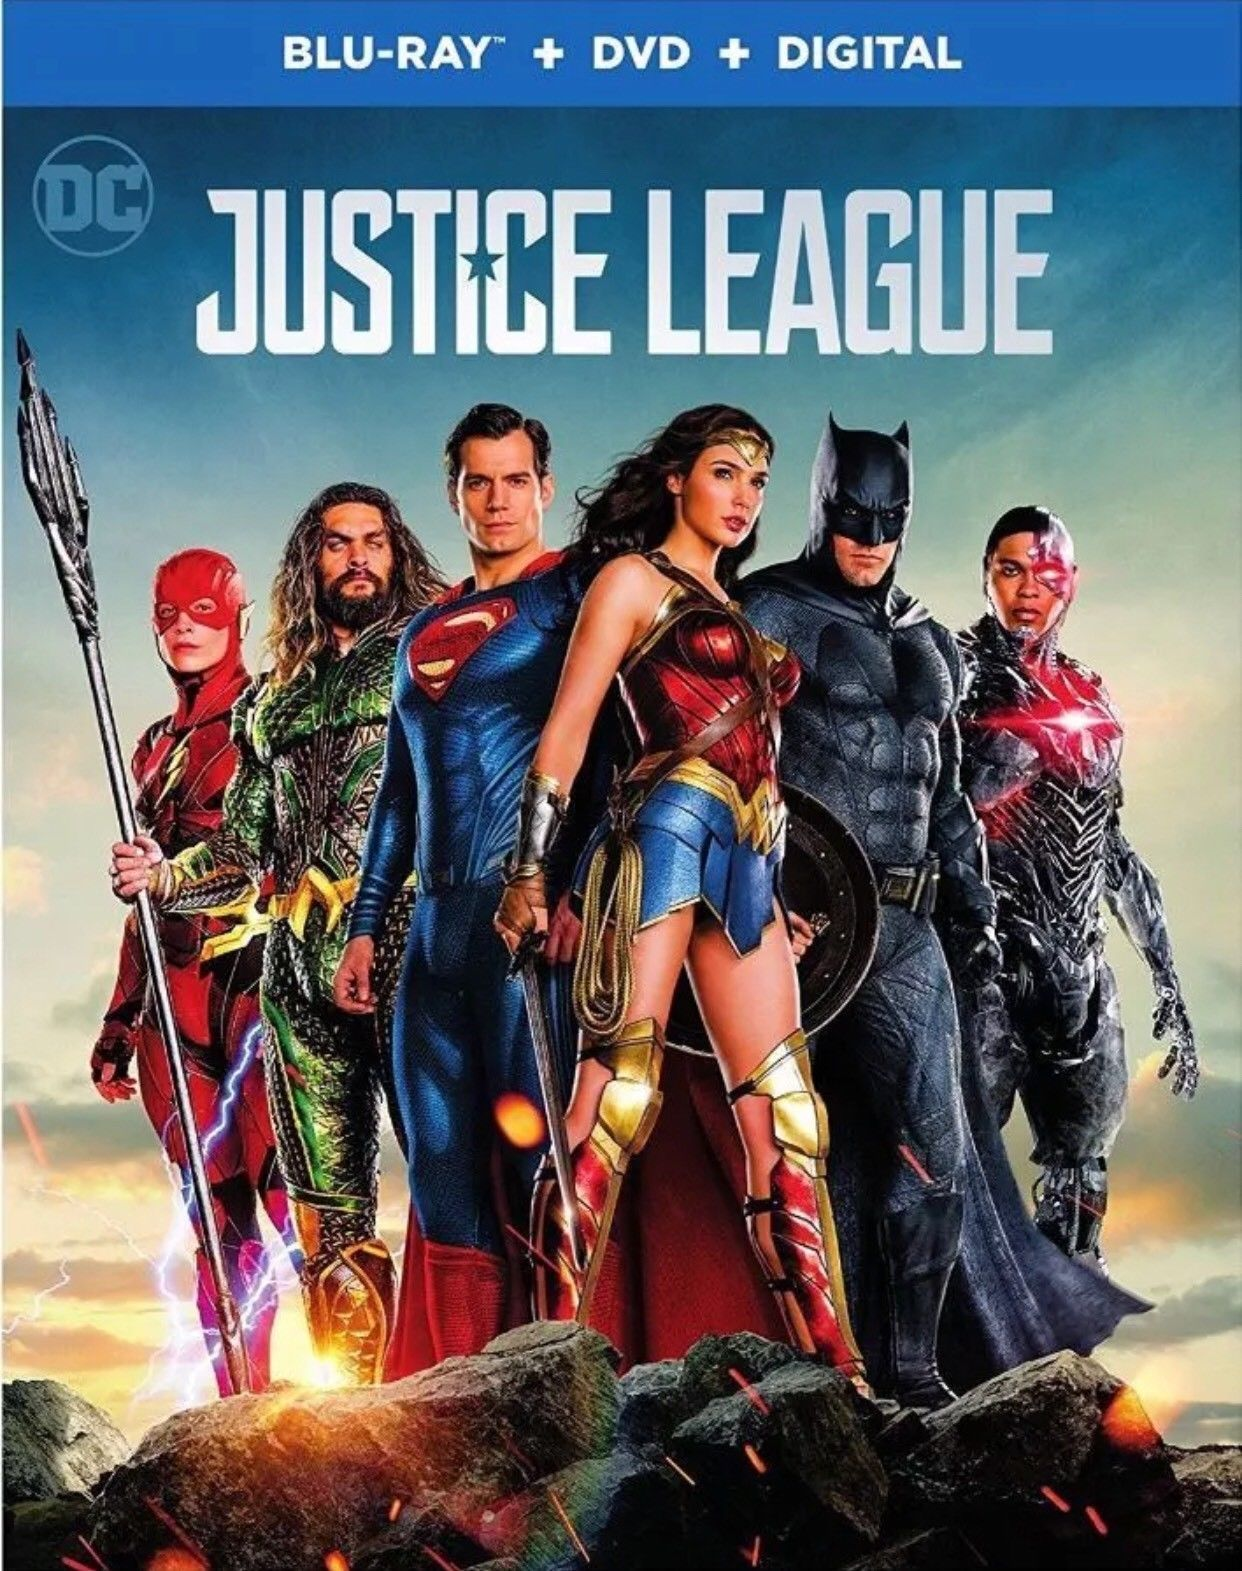 justice league(blu-ray+dvd+digital)w/slipcover new unopened